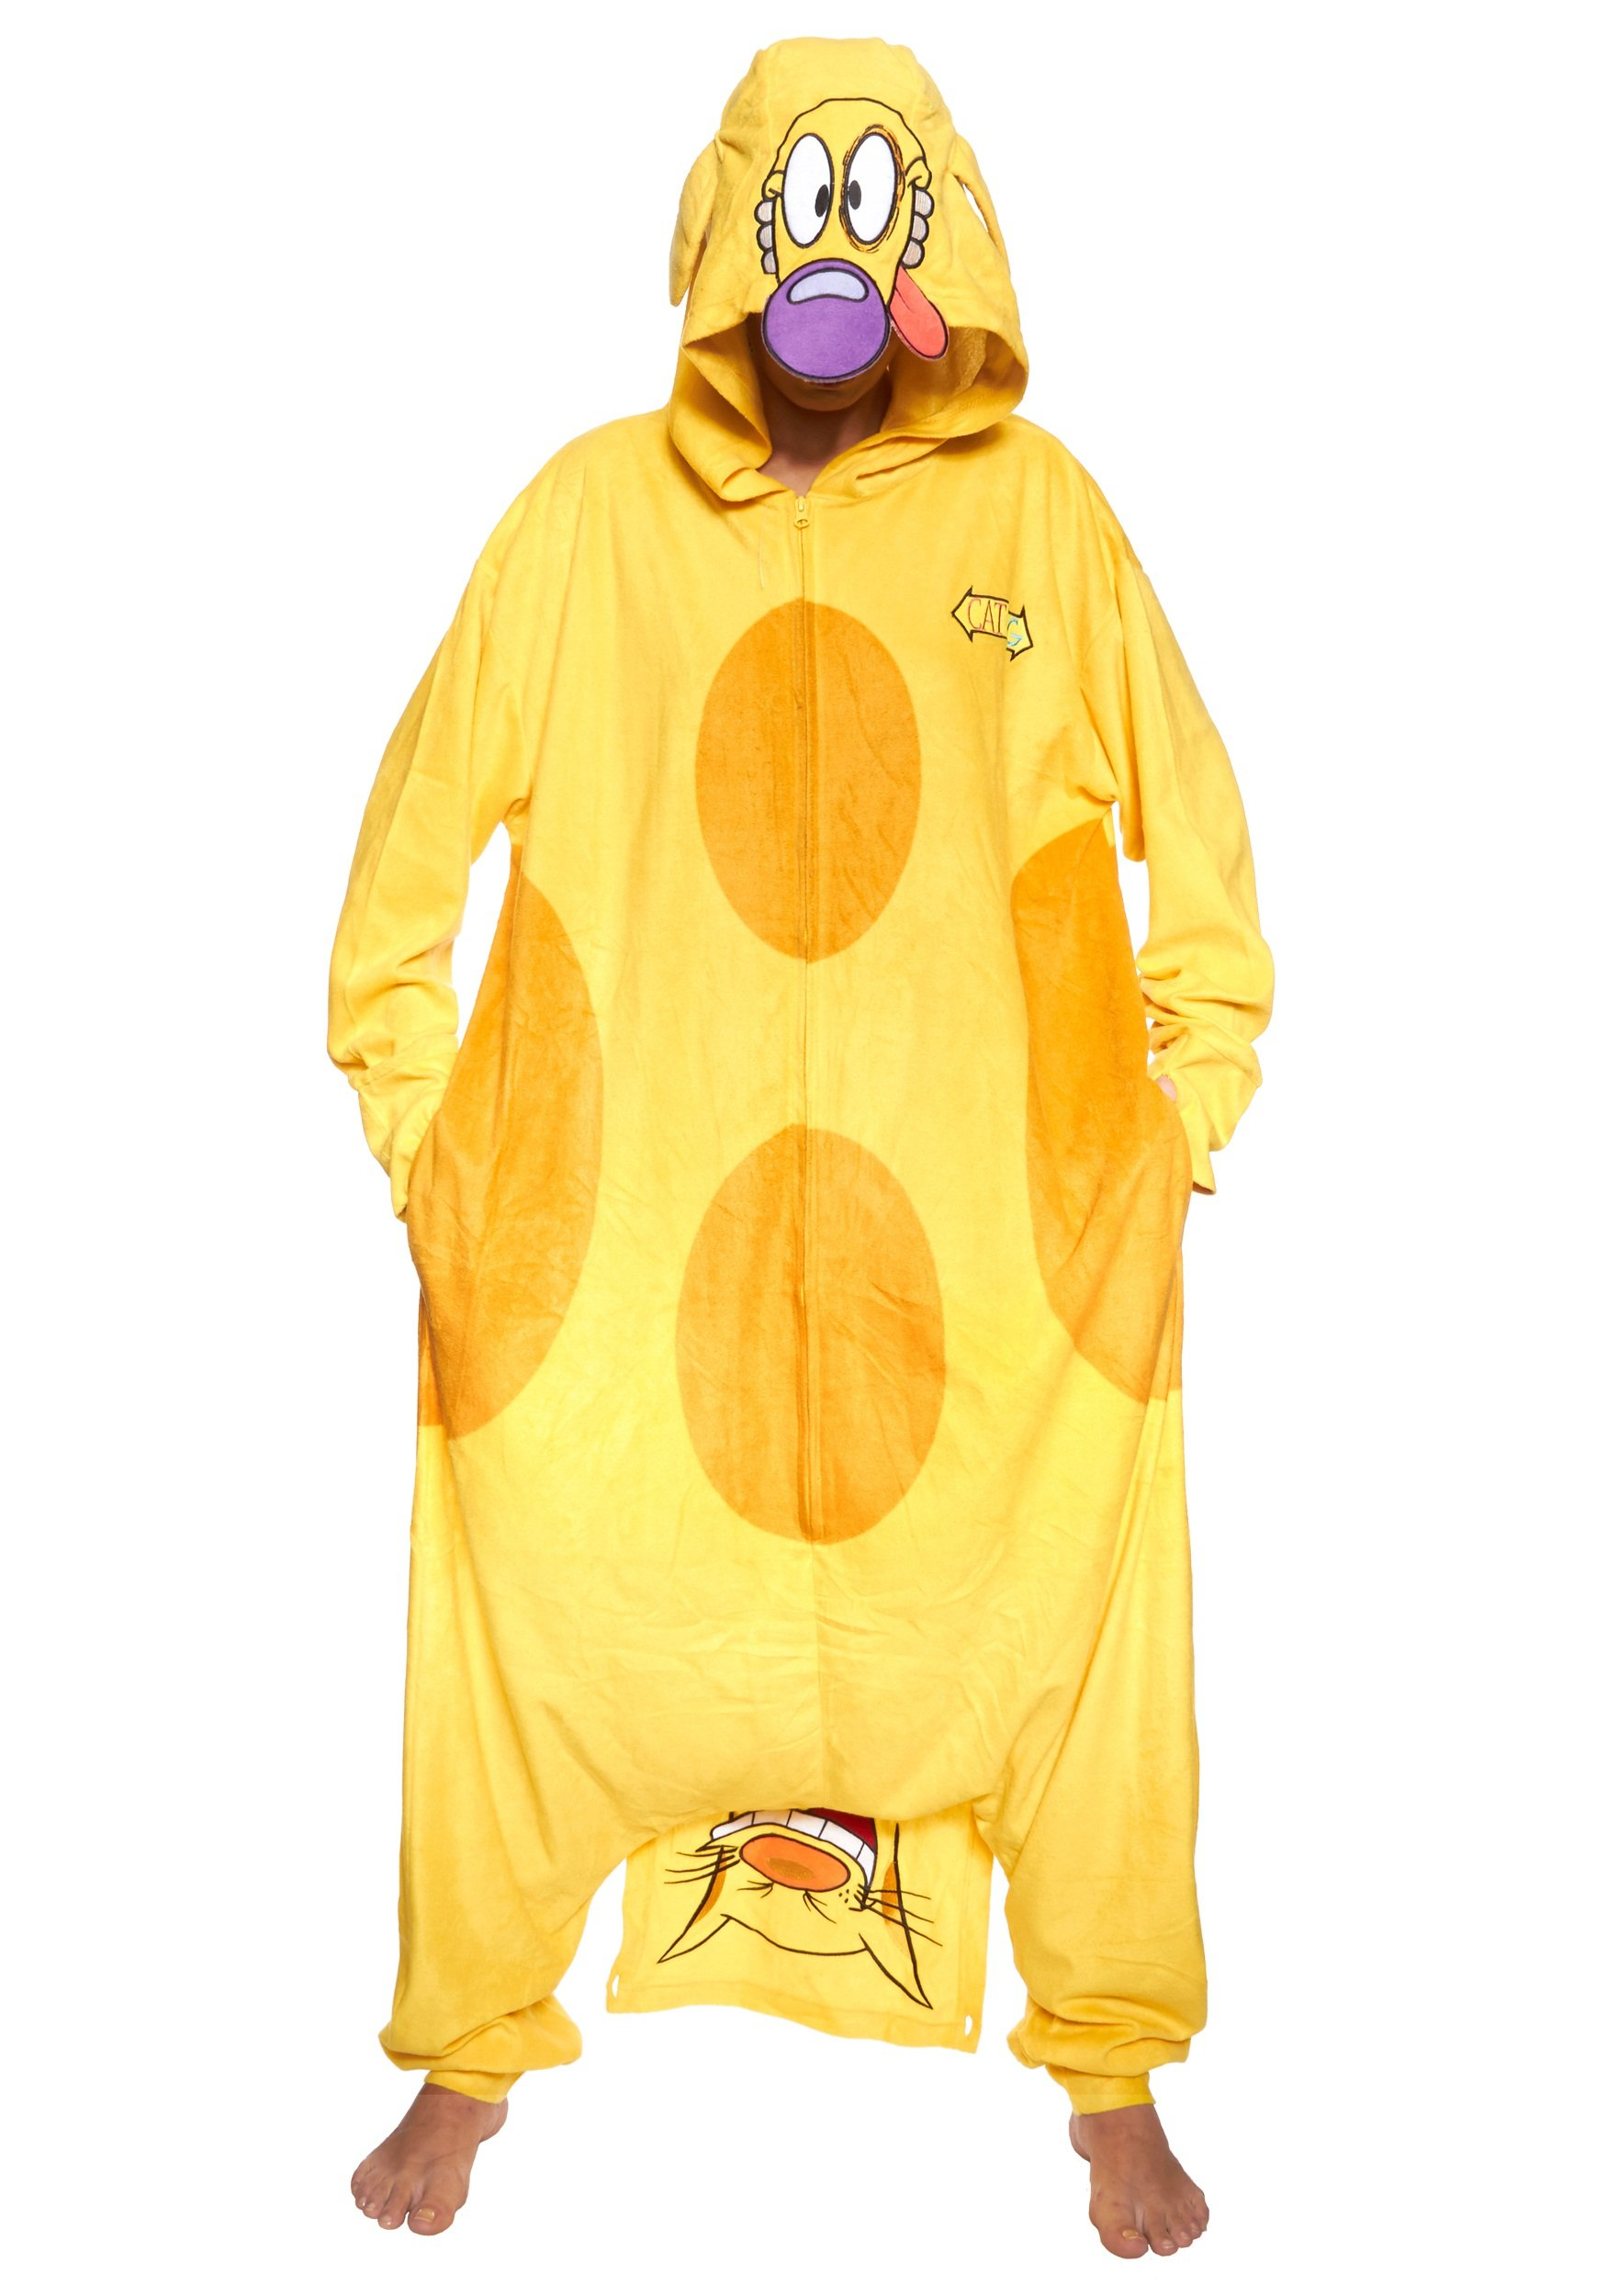 dexterminduwi.ga is an distributor of authentic SAZAC kigurumi. SAZAC is Japan's number one kigurumi manufacturer, and the quality of SAZAC onesies is unmatched around the world. Unfortunately, this means that many other manufacturers will try (and fail!) to mimic SAZAC products.